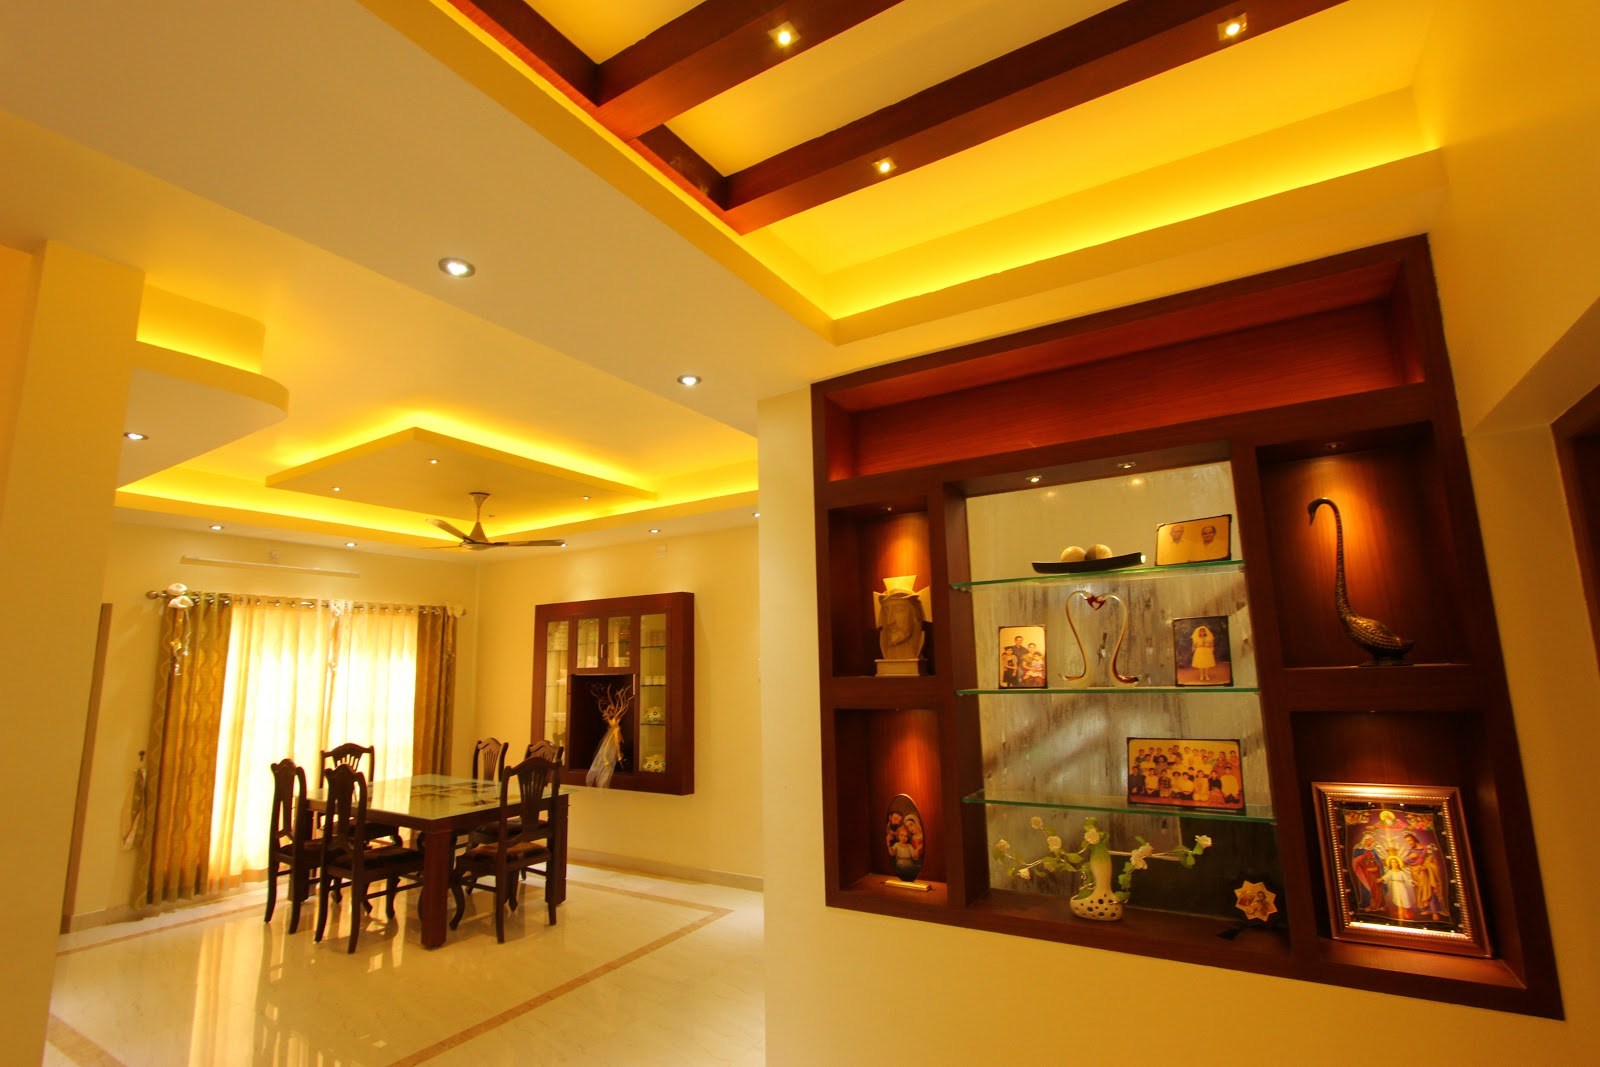 Shilpakala interiors award winning home interior design for Interior designs in kerala